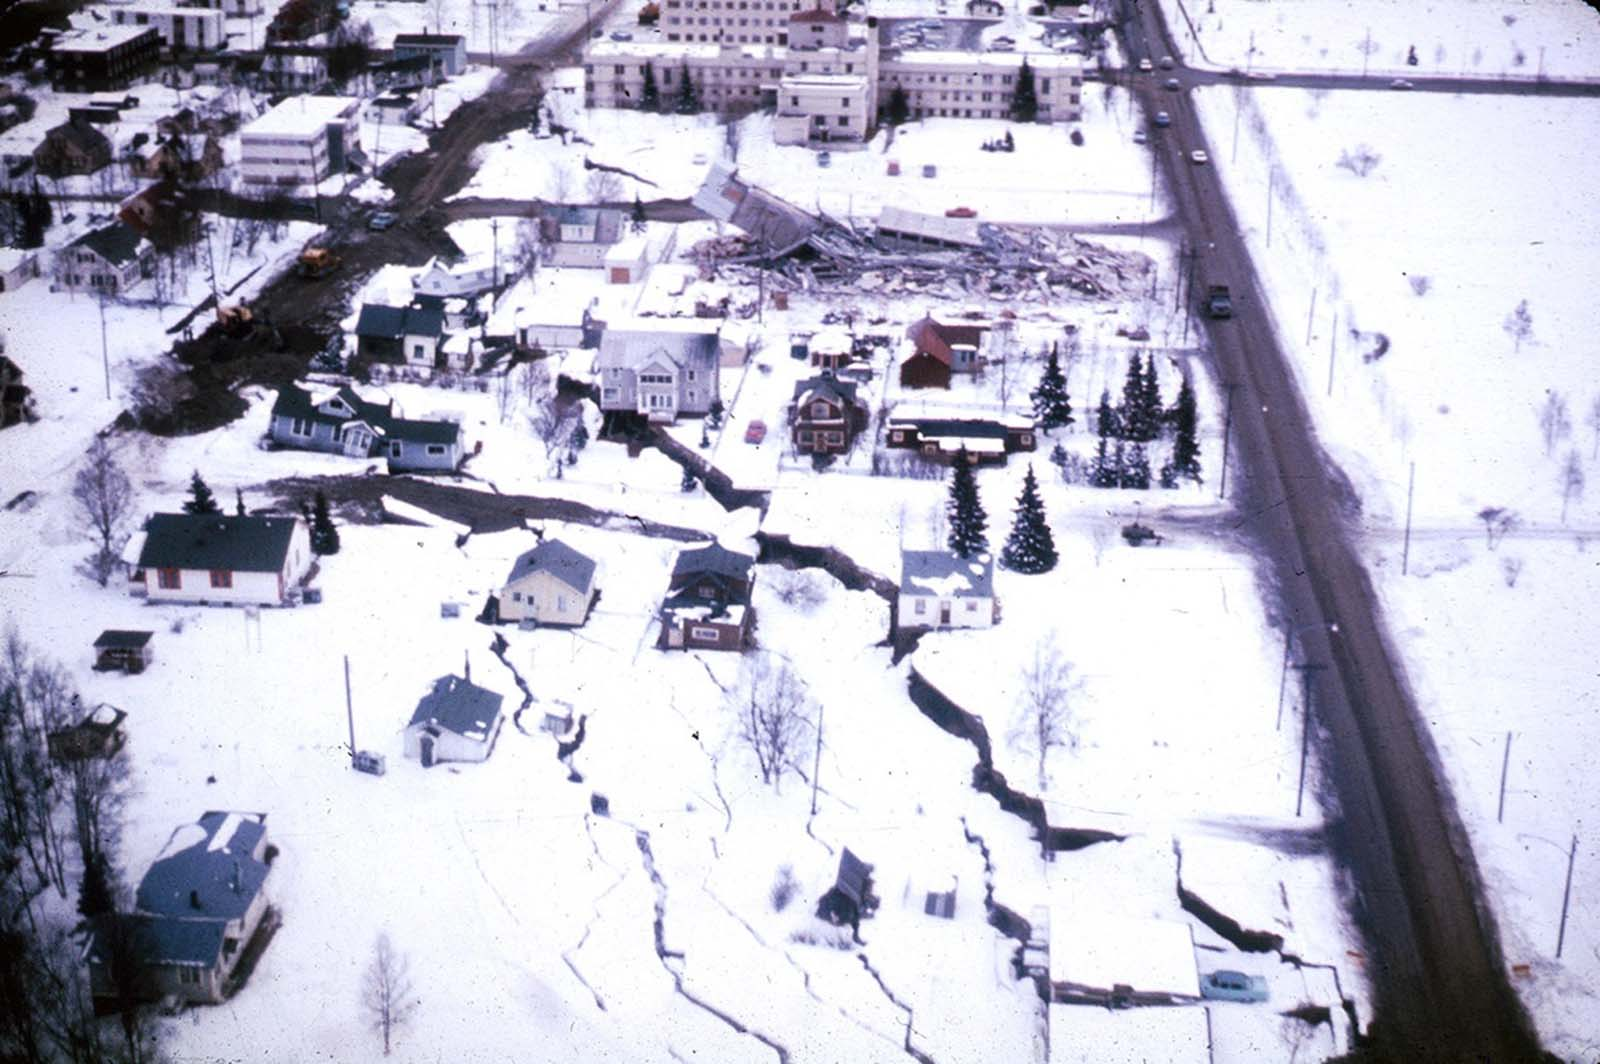 The head of the L Street landslide in Anchorage. The land on the left side sank 7 to 10 feet in response to 11 feet of horizontal movement of the lower section of the slide. A number of houses were undercut or tilted by subsidence of the graben. Note also the collapsed Four Seasons Apartment Building and the undamaged three-story reinforced concrete frame building behind it, which are on more stable ground.